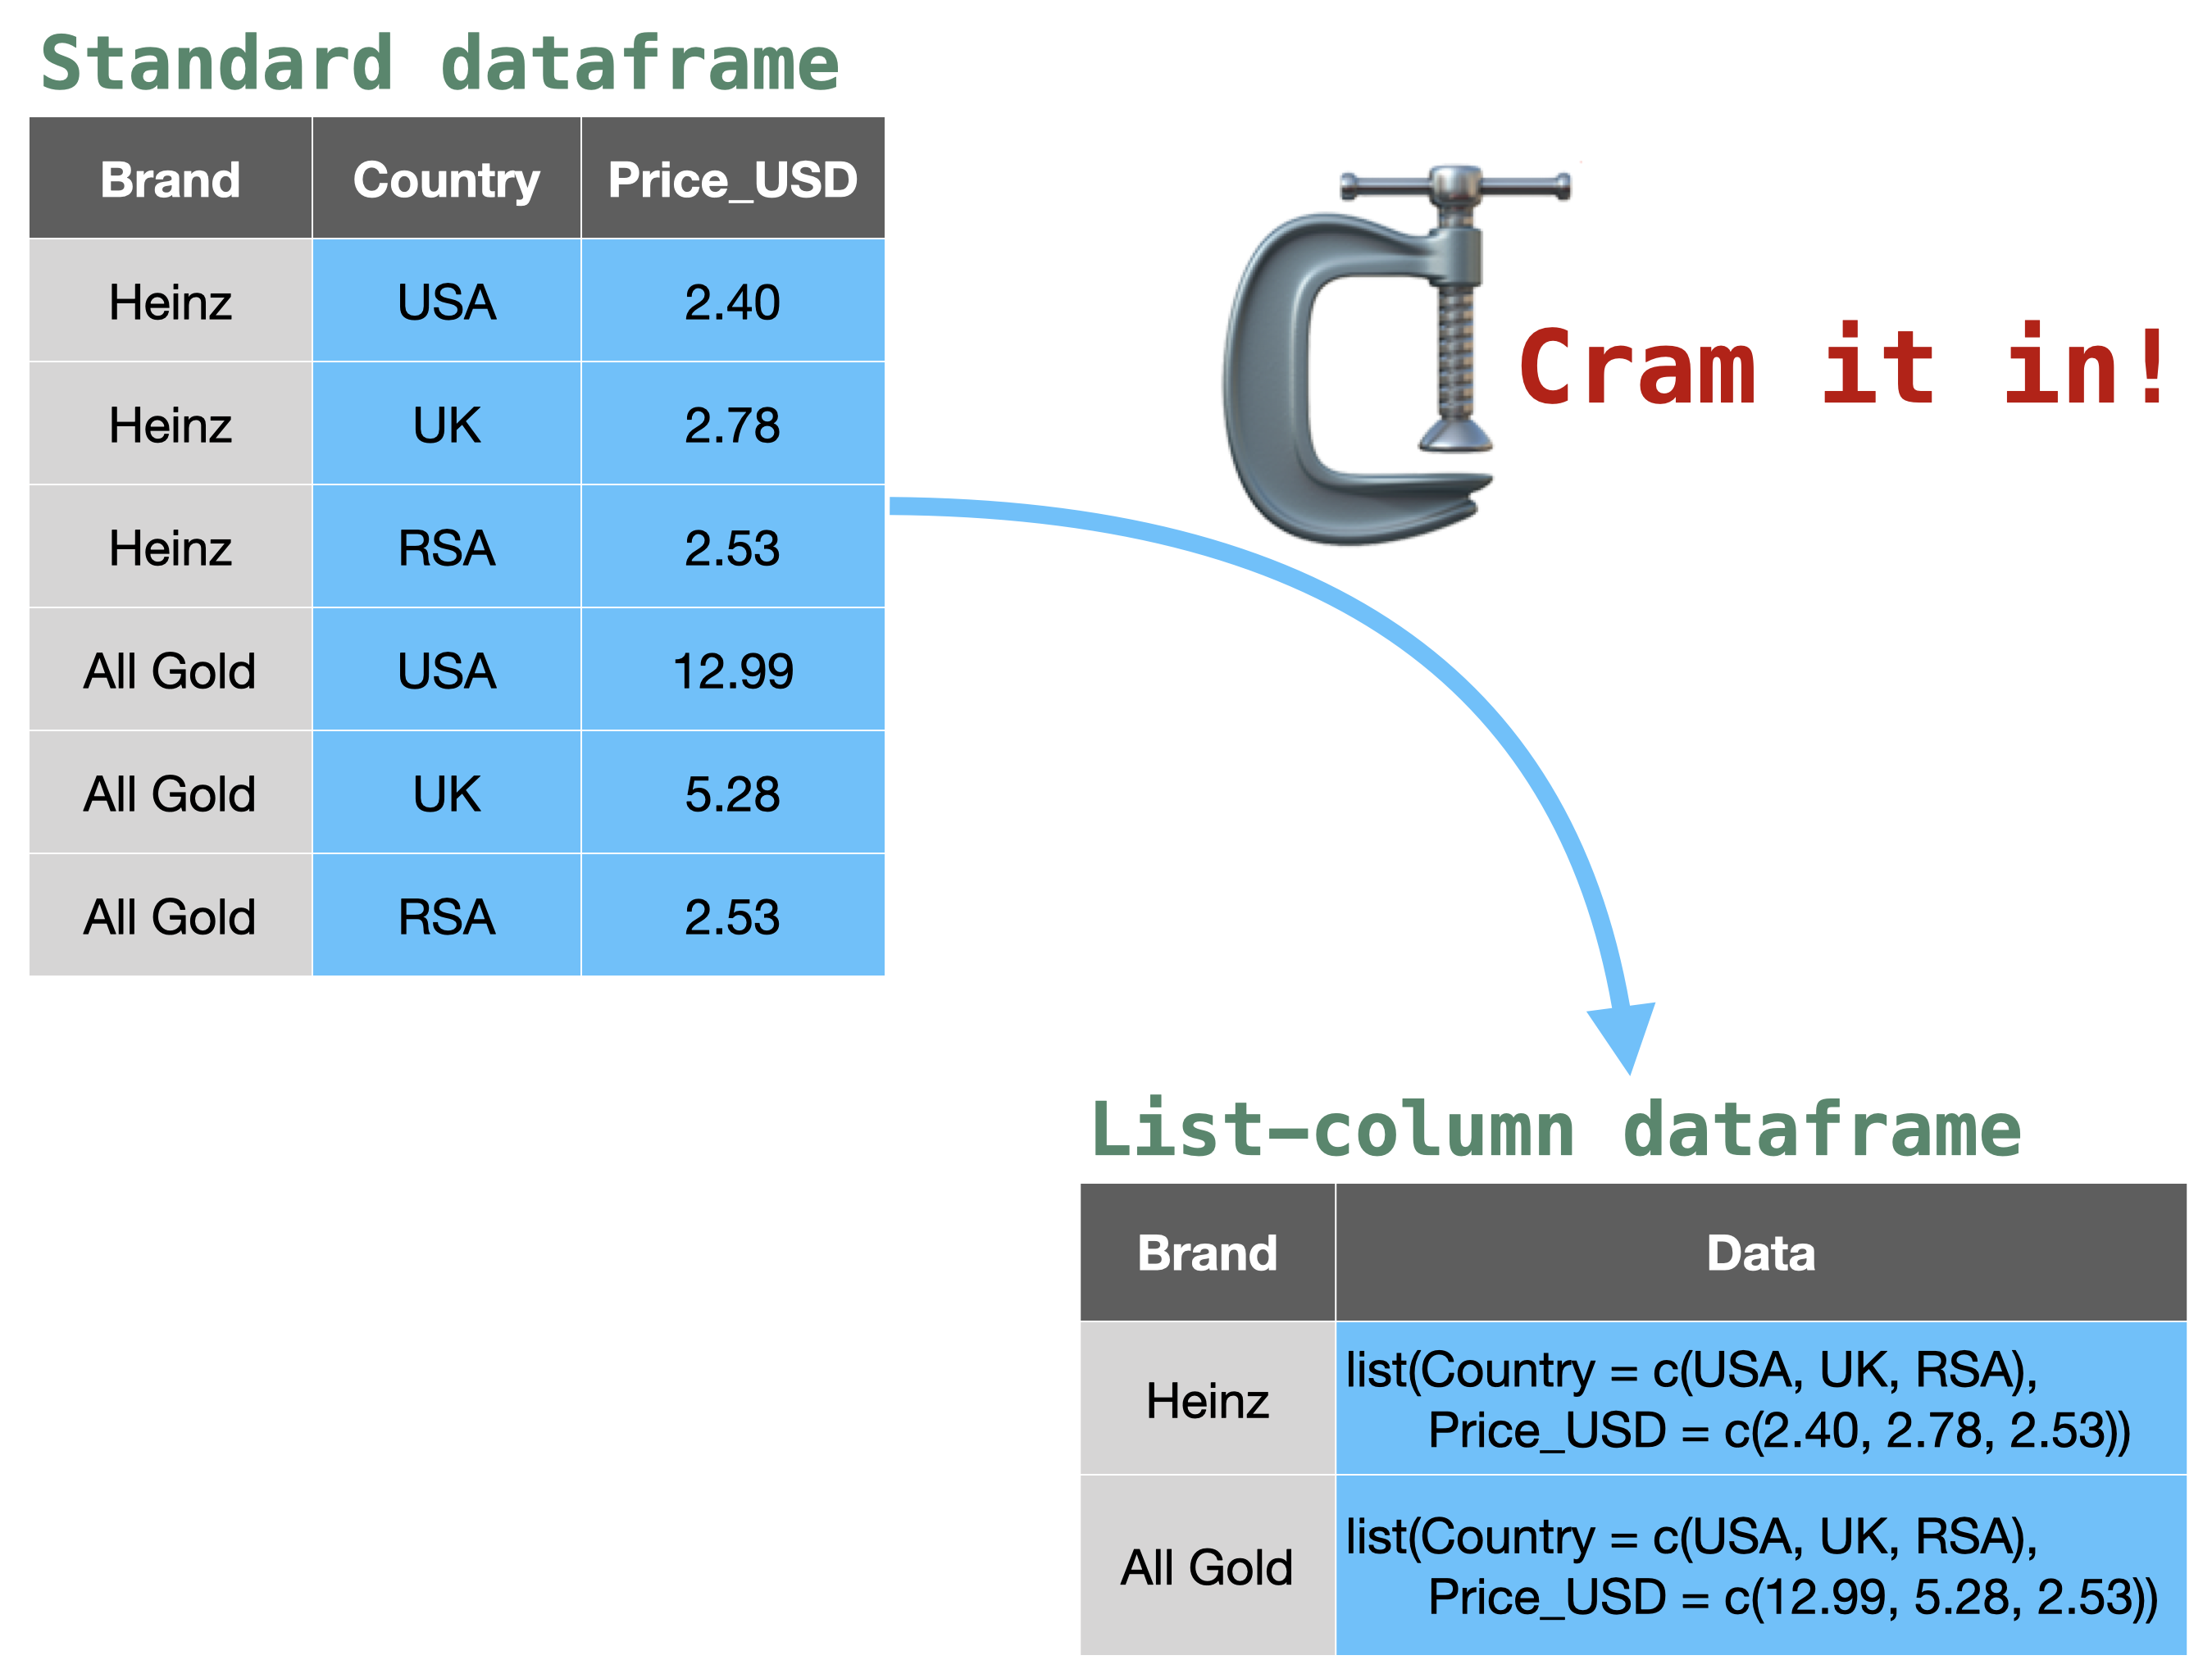 Some dataframe columns being nested using tidyr, with picture of a vice tool, and the words 'cram it in!'